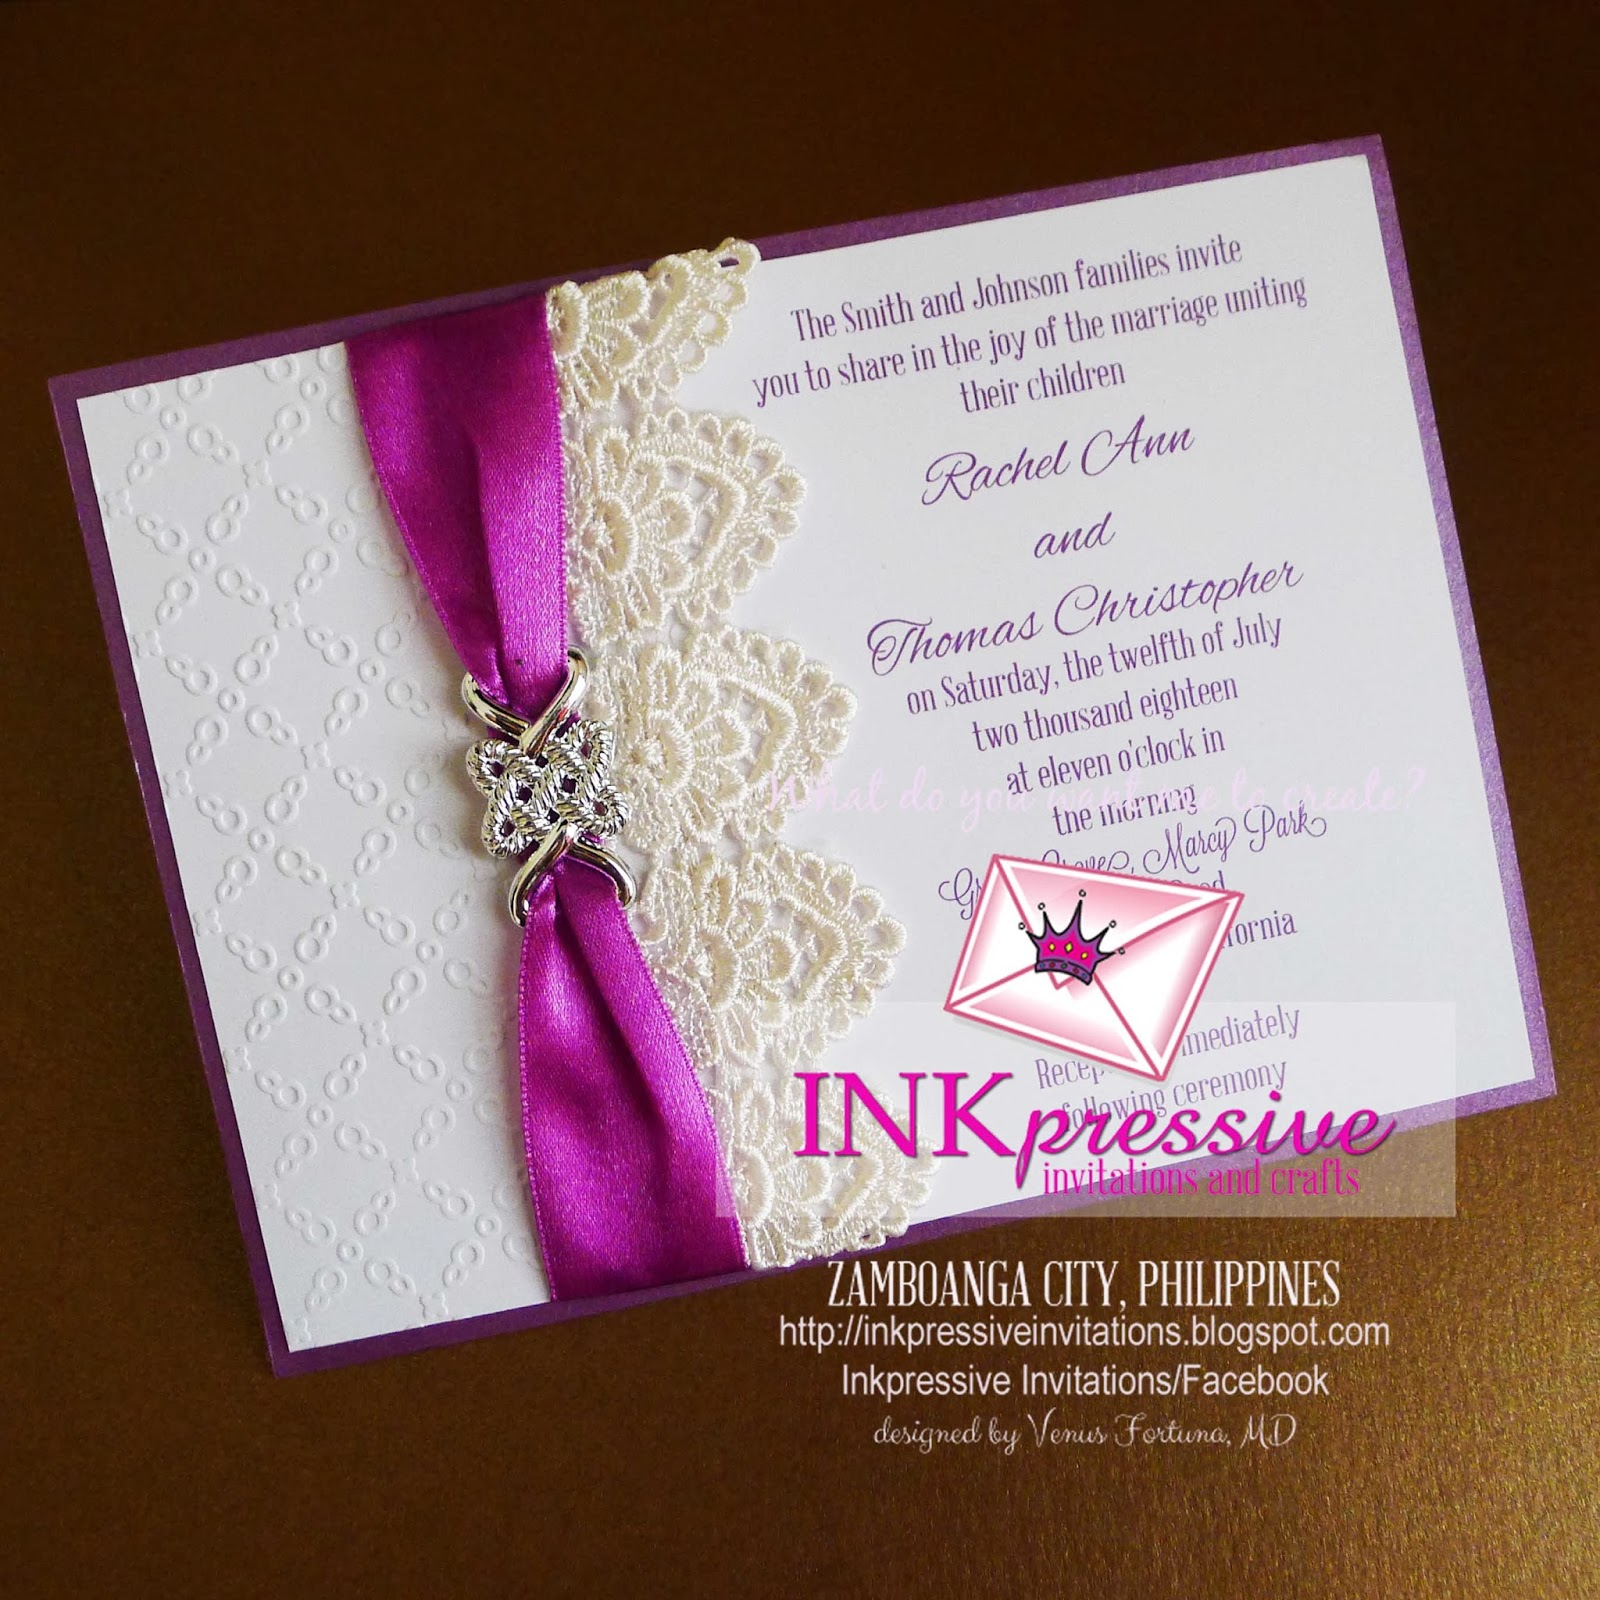 Embossed Invitation for good invitations example